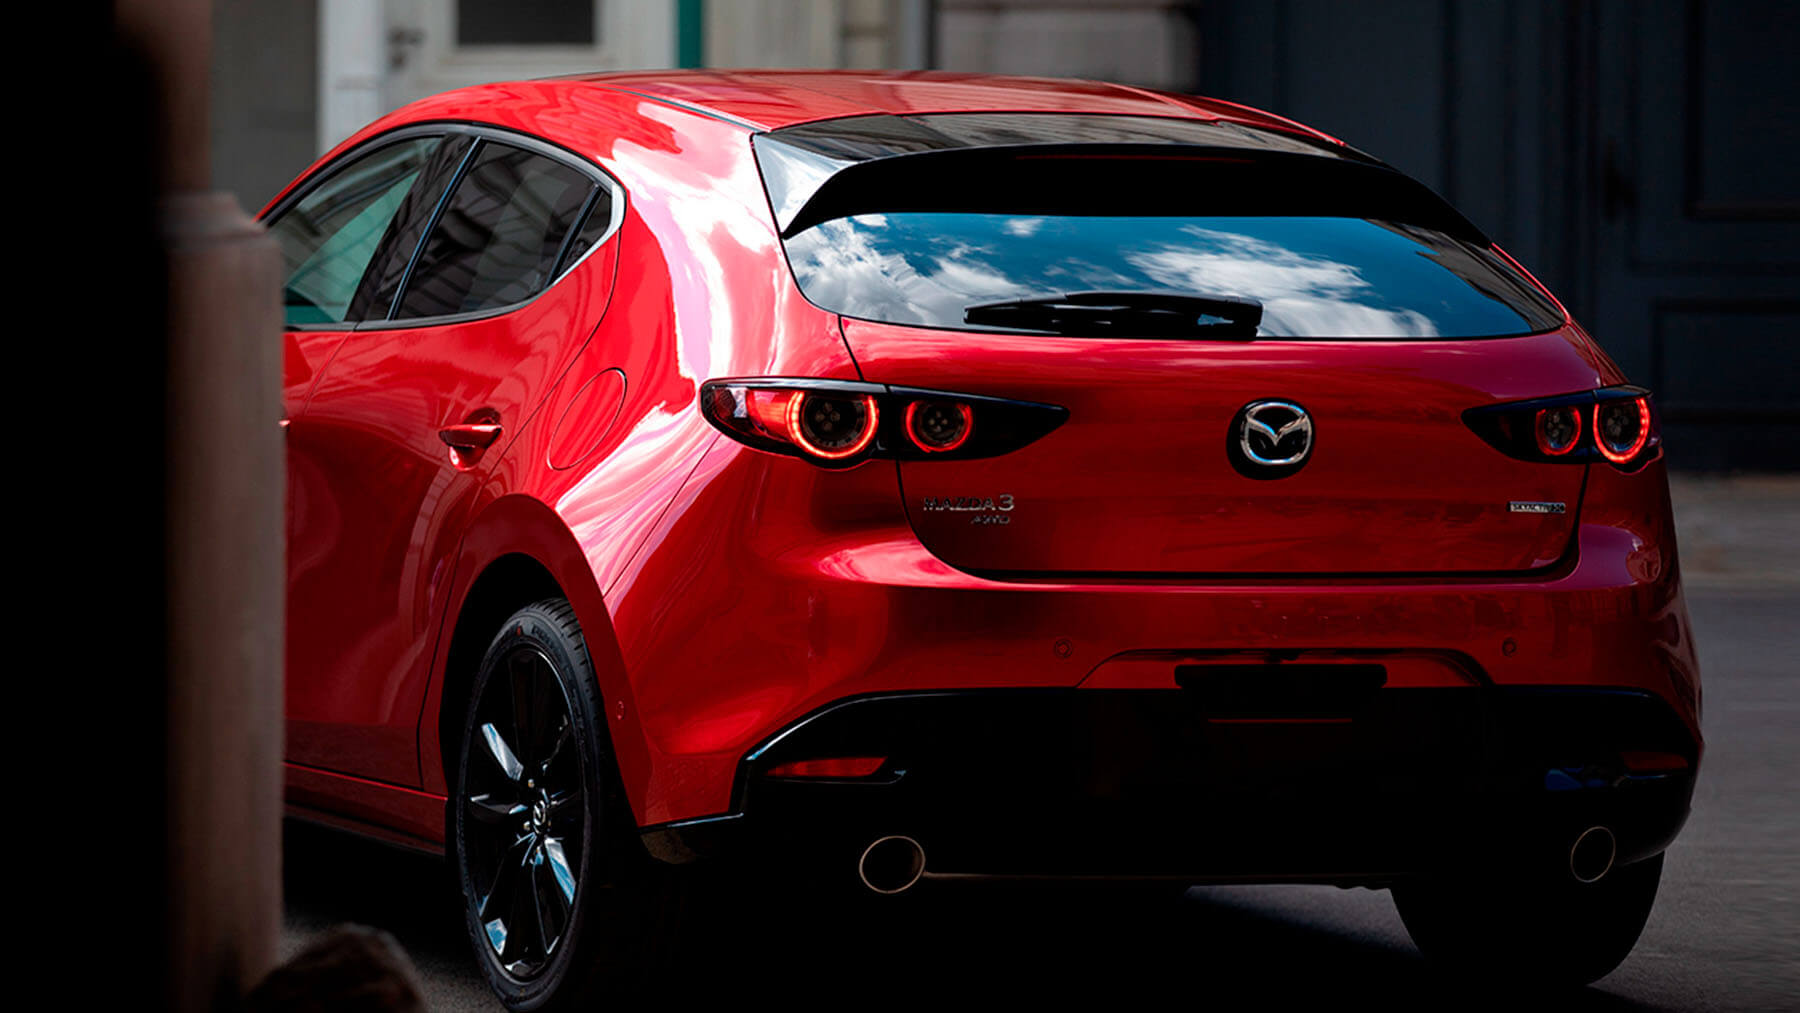 Galeria - All-New Mazda3 Sport